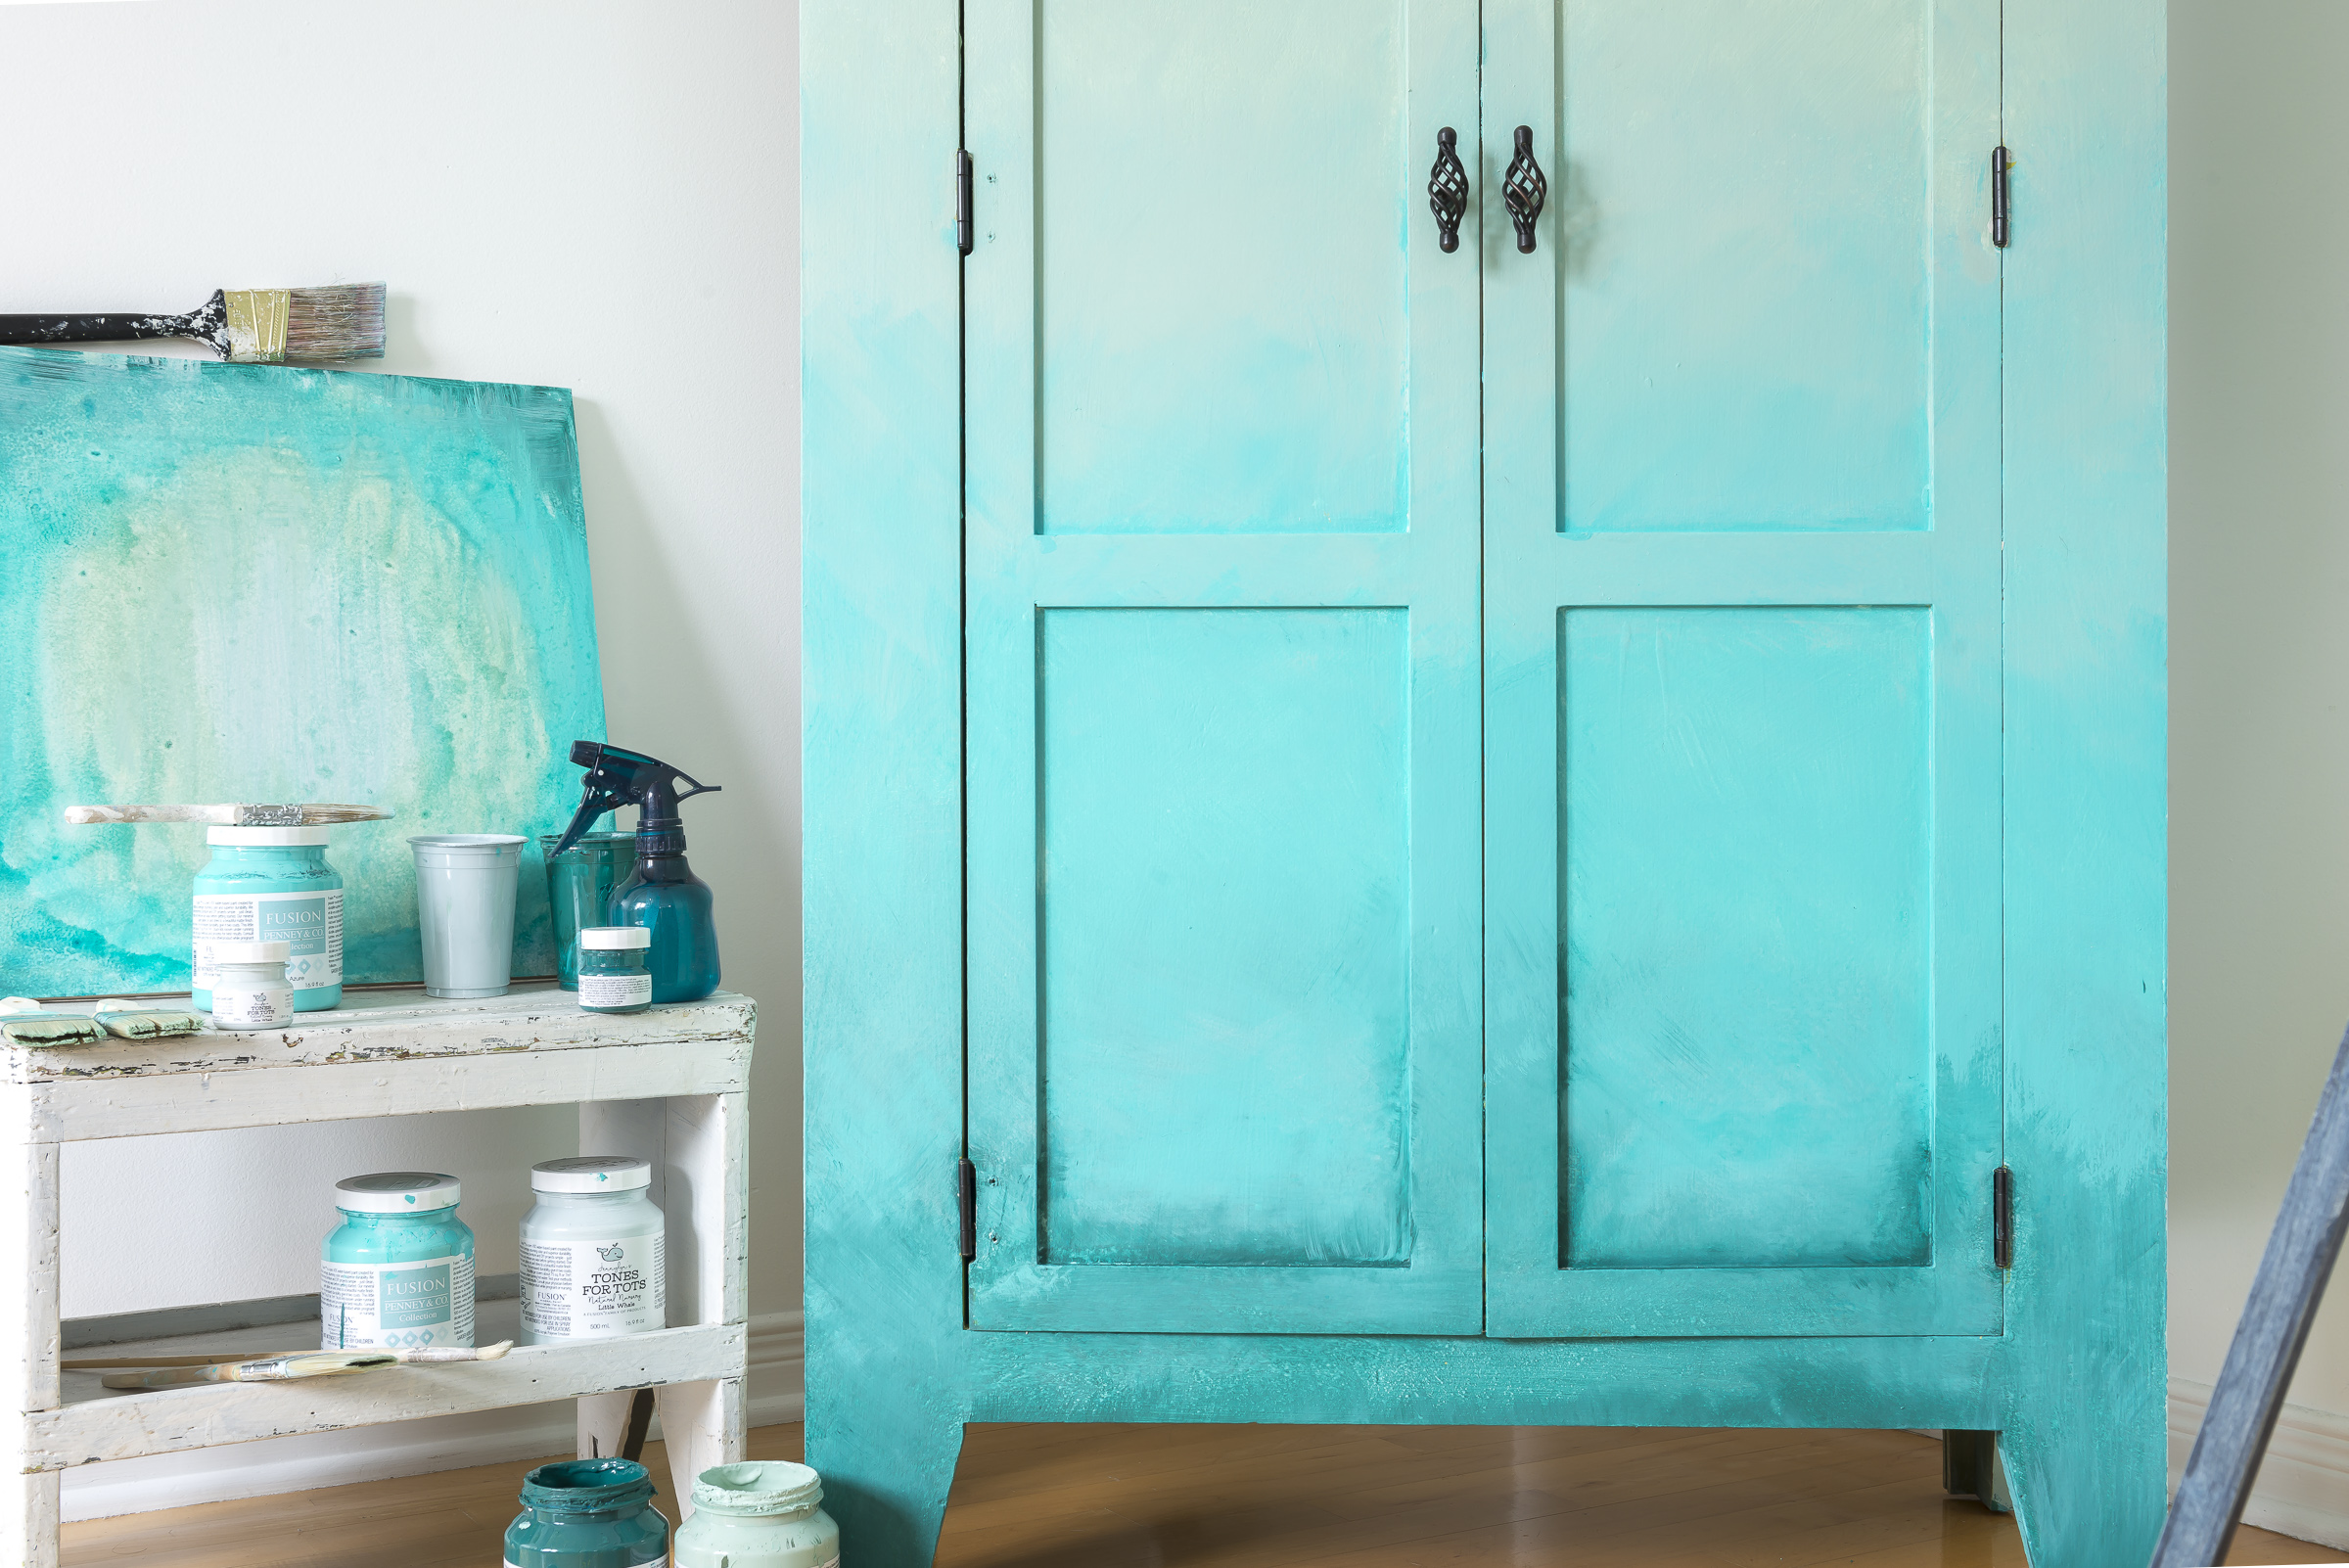 How To Blend Paint Create An Ombré Effect